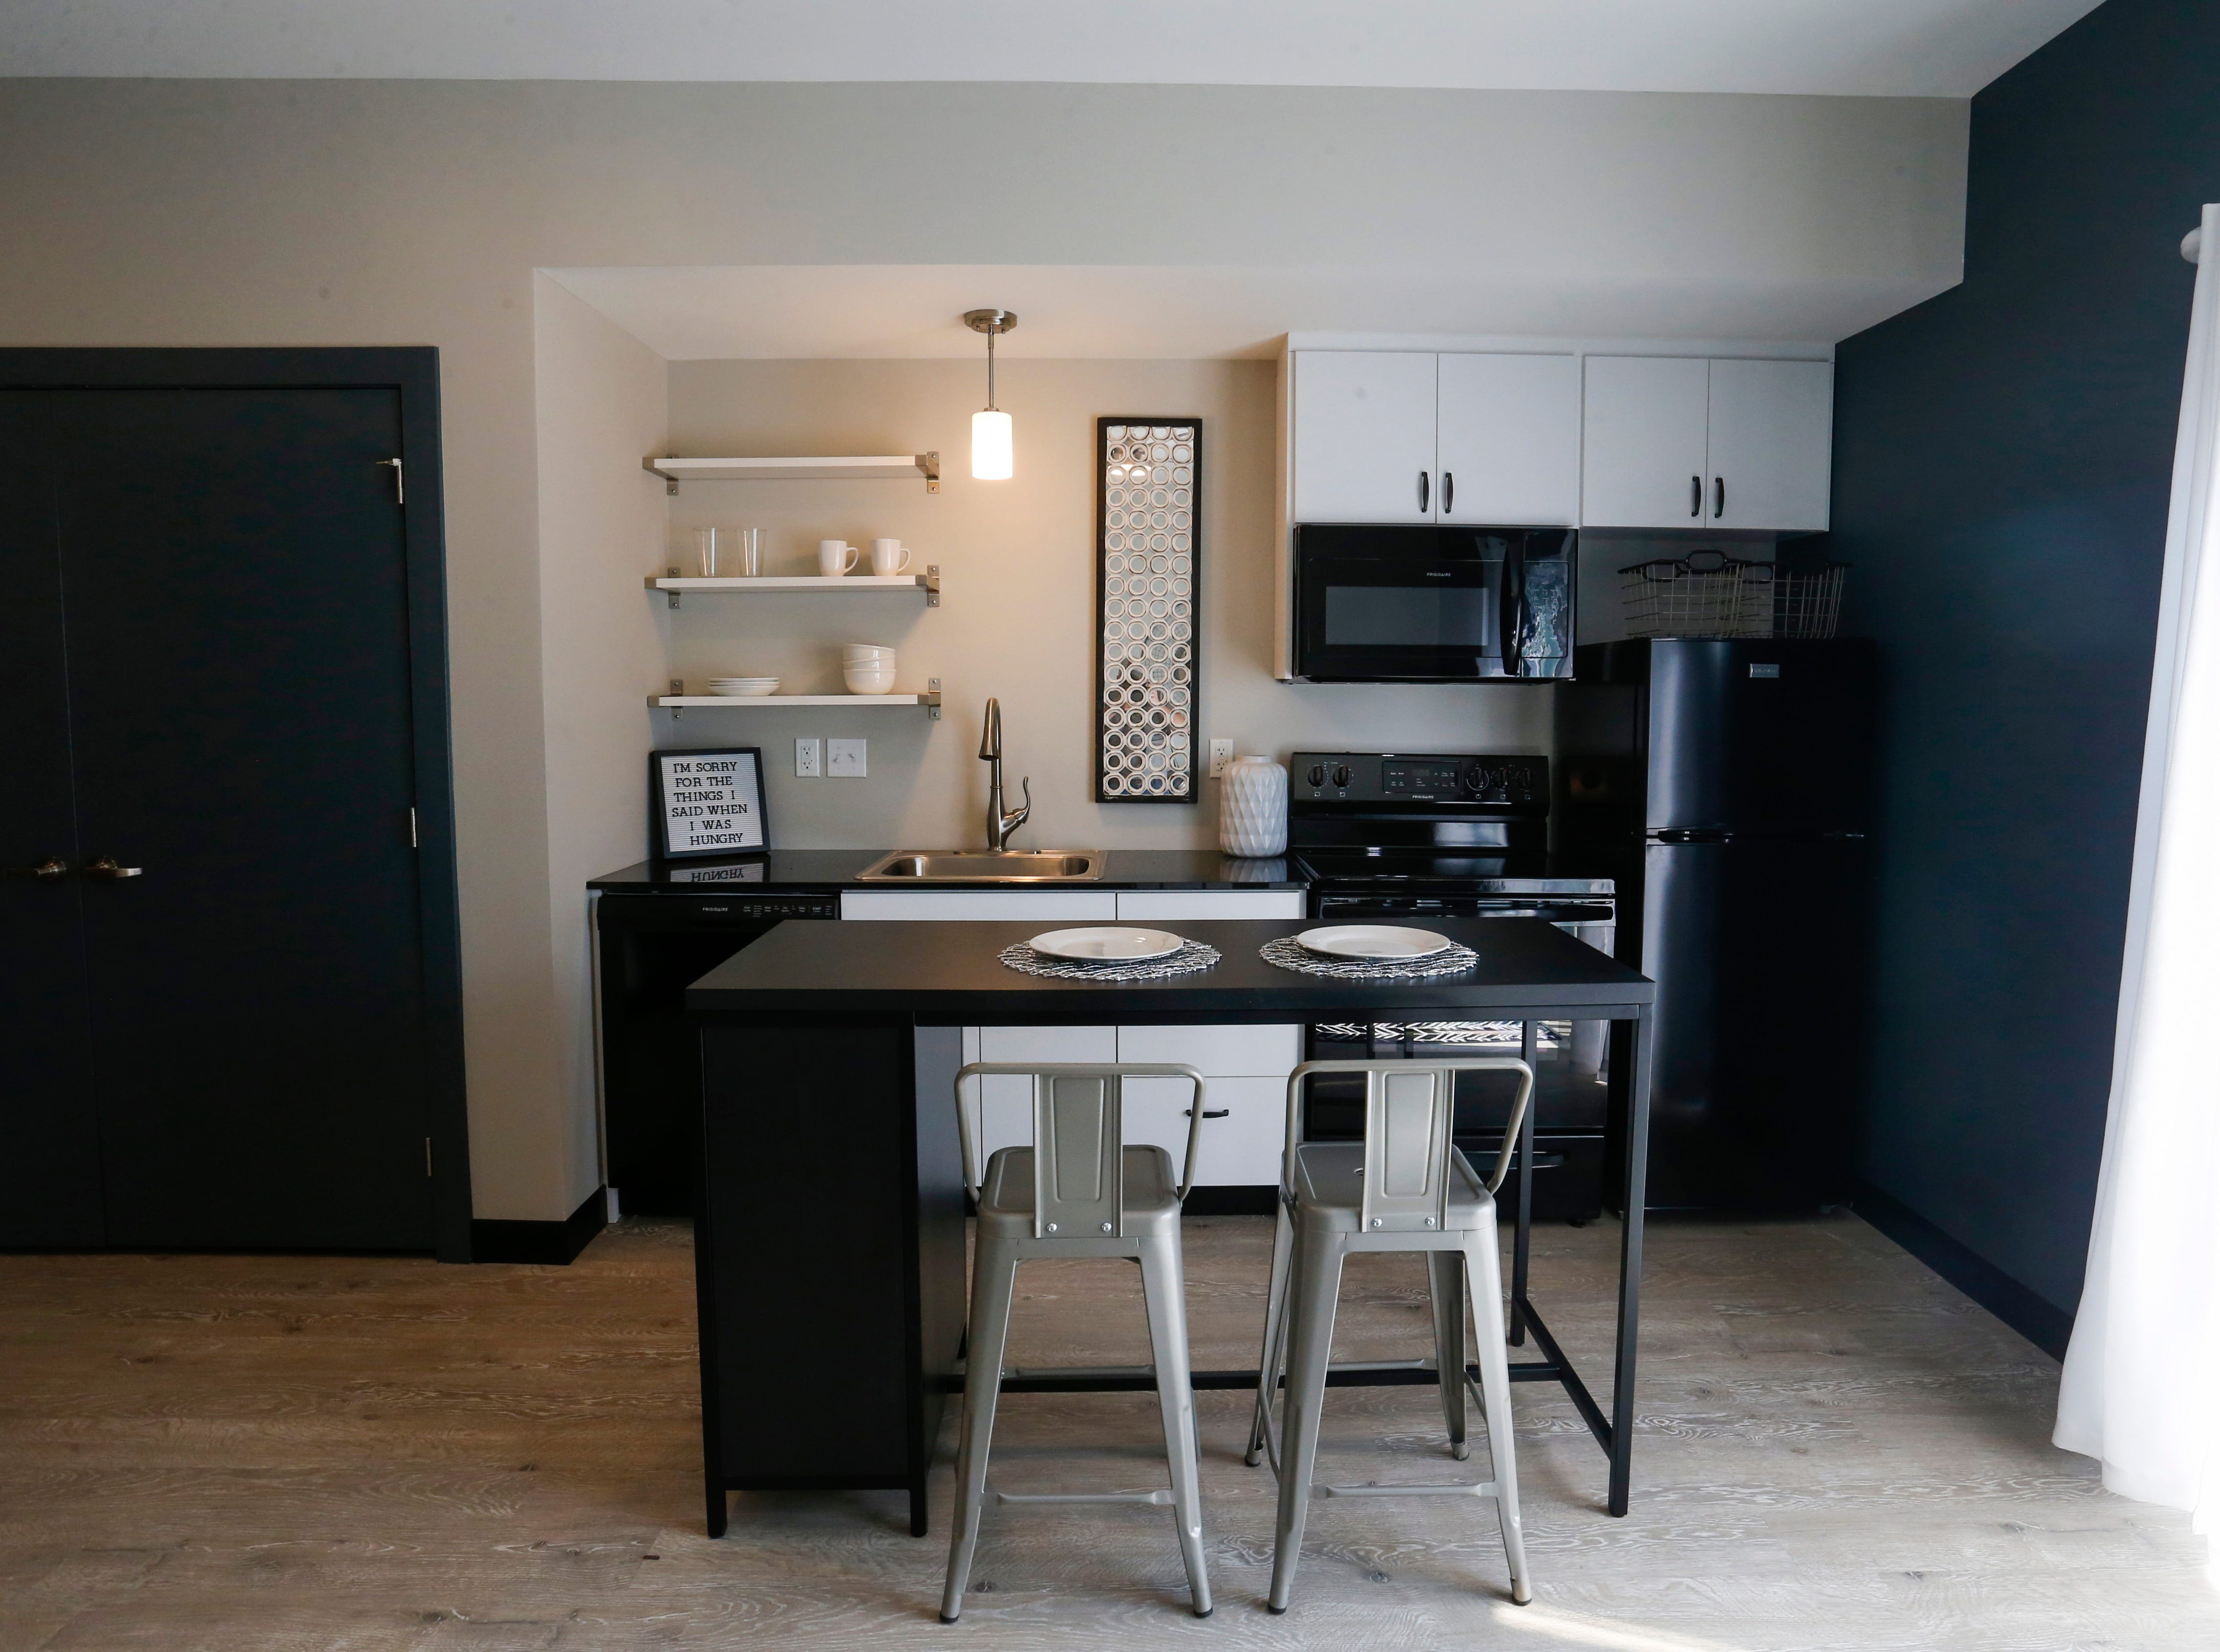 The Boomer Town studios at 824 S National Ave., across from MSU, are already 80 percent full. There are 70 micro-efficiency studio apartments, which are less than 400 square feet, in the development.